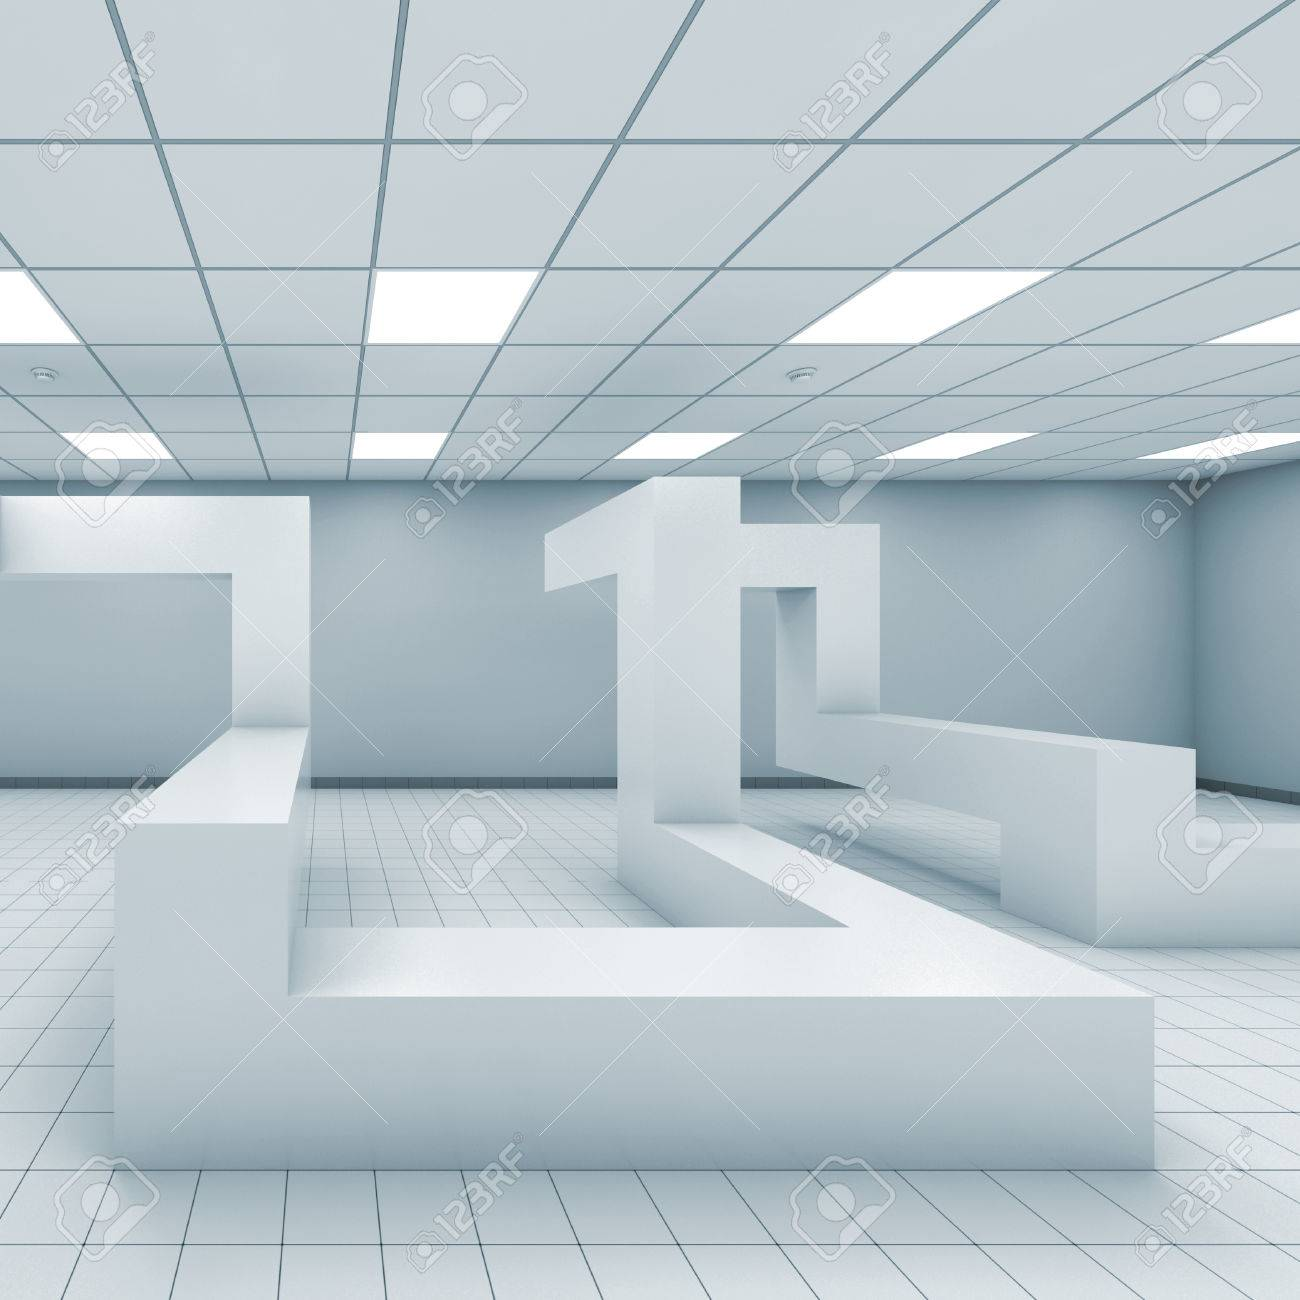 Abstract Monochrome Empty Office Room Interior With Chaotic ...